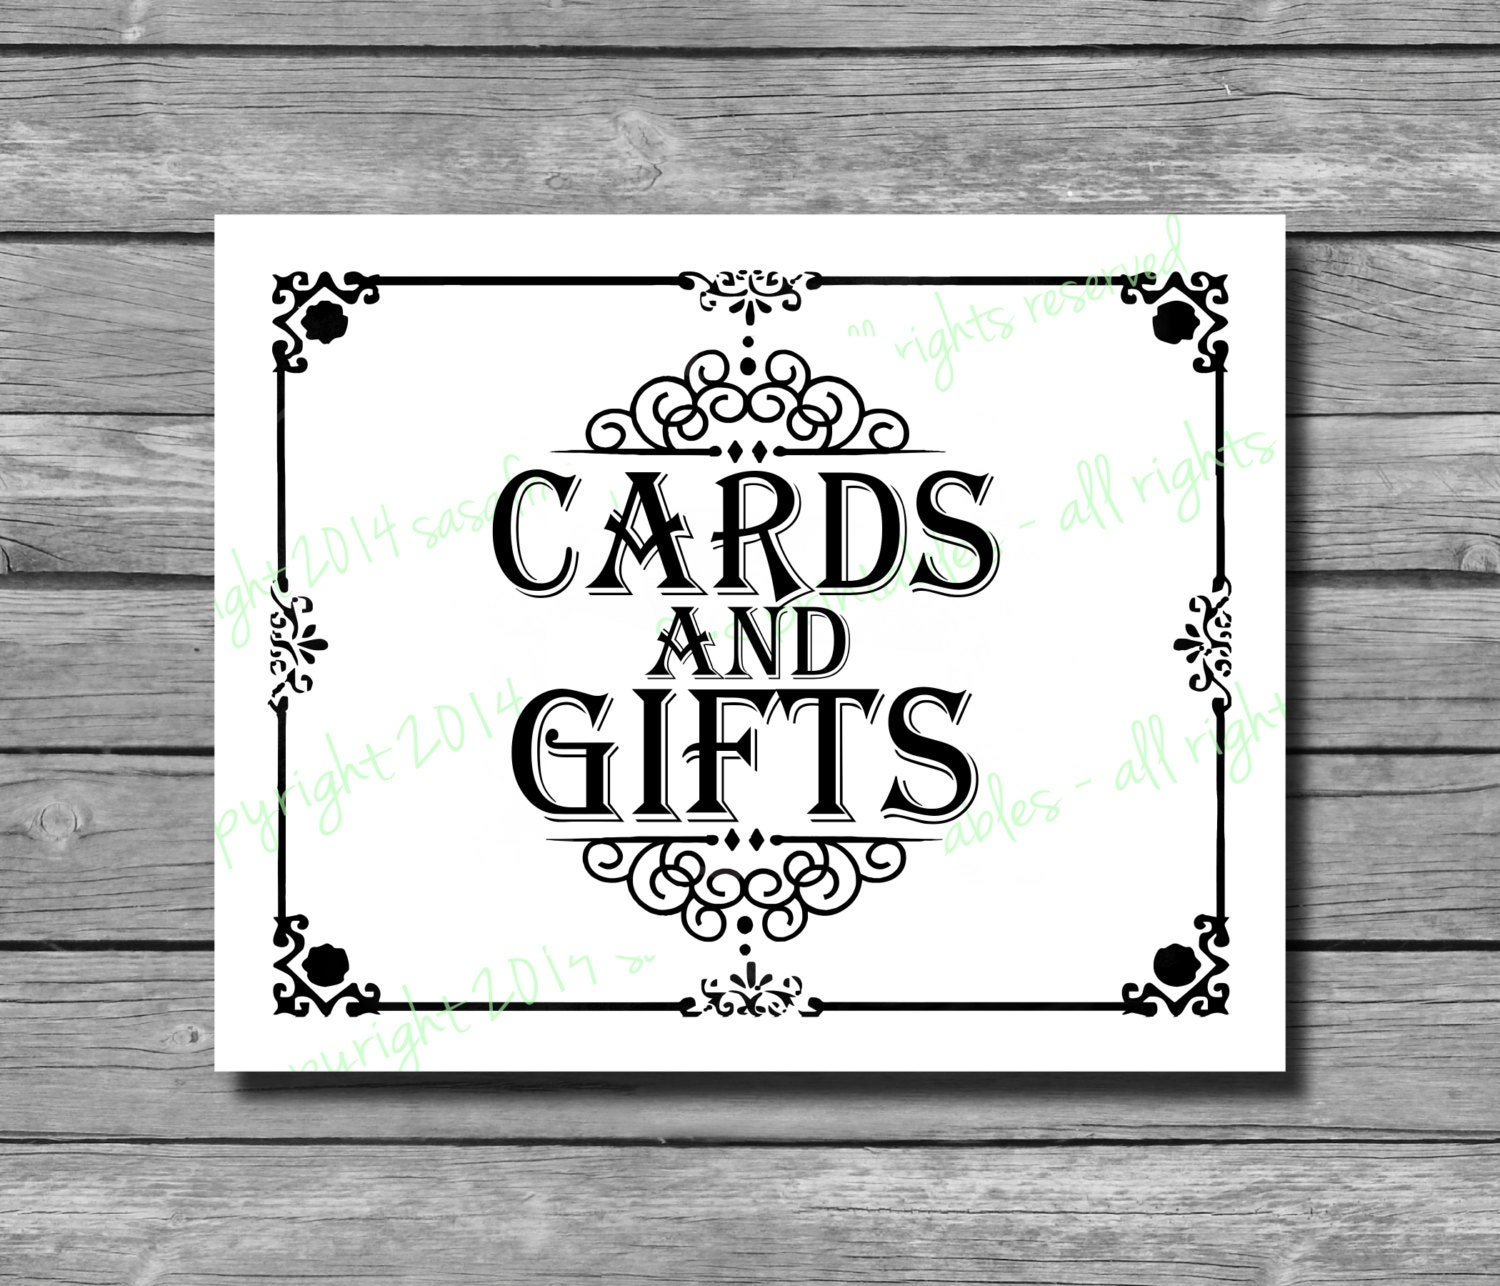 Clean image intended for cards and gifts sign printable